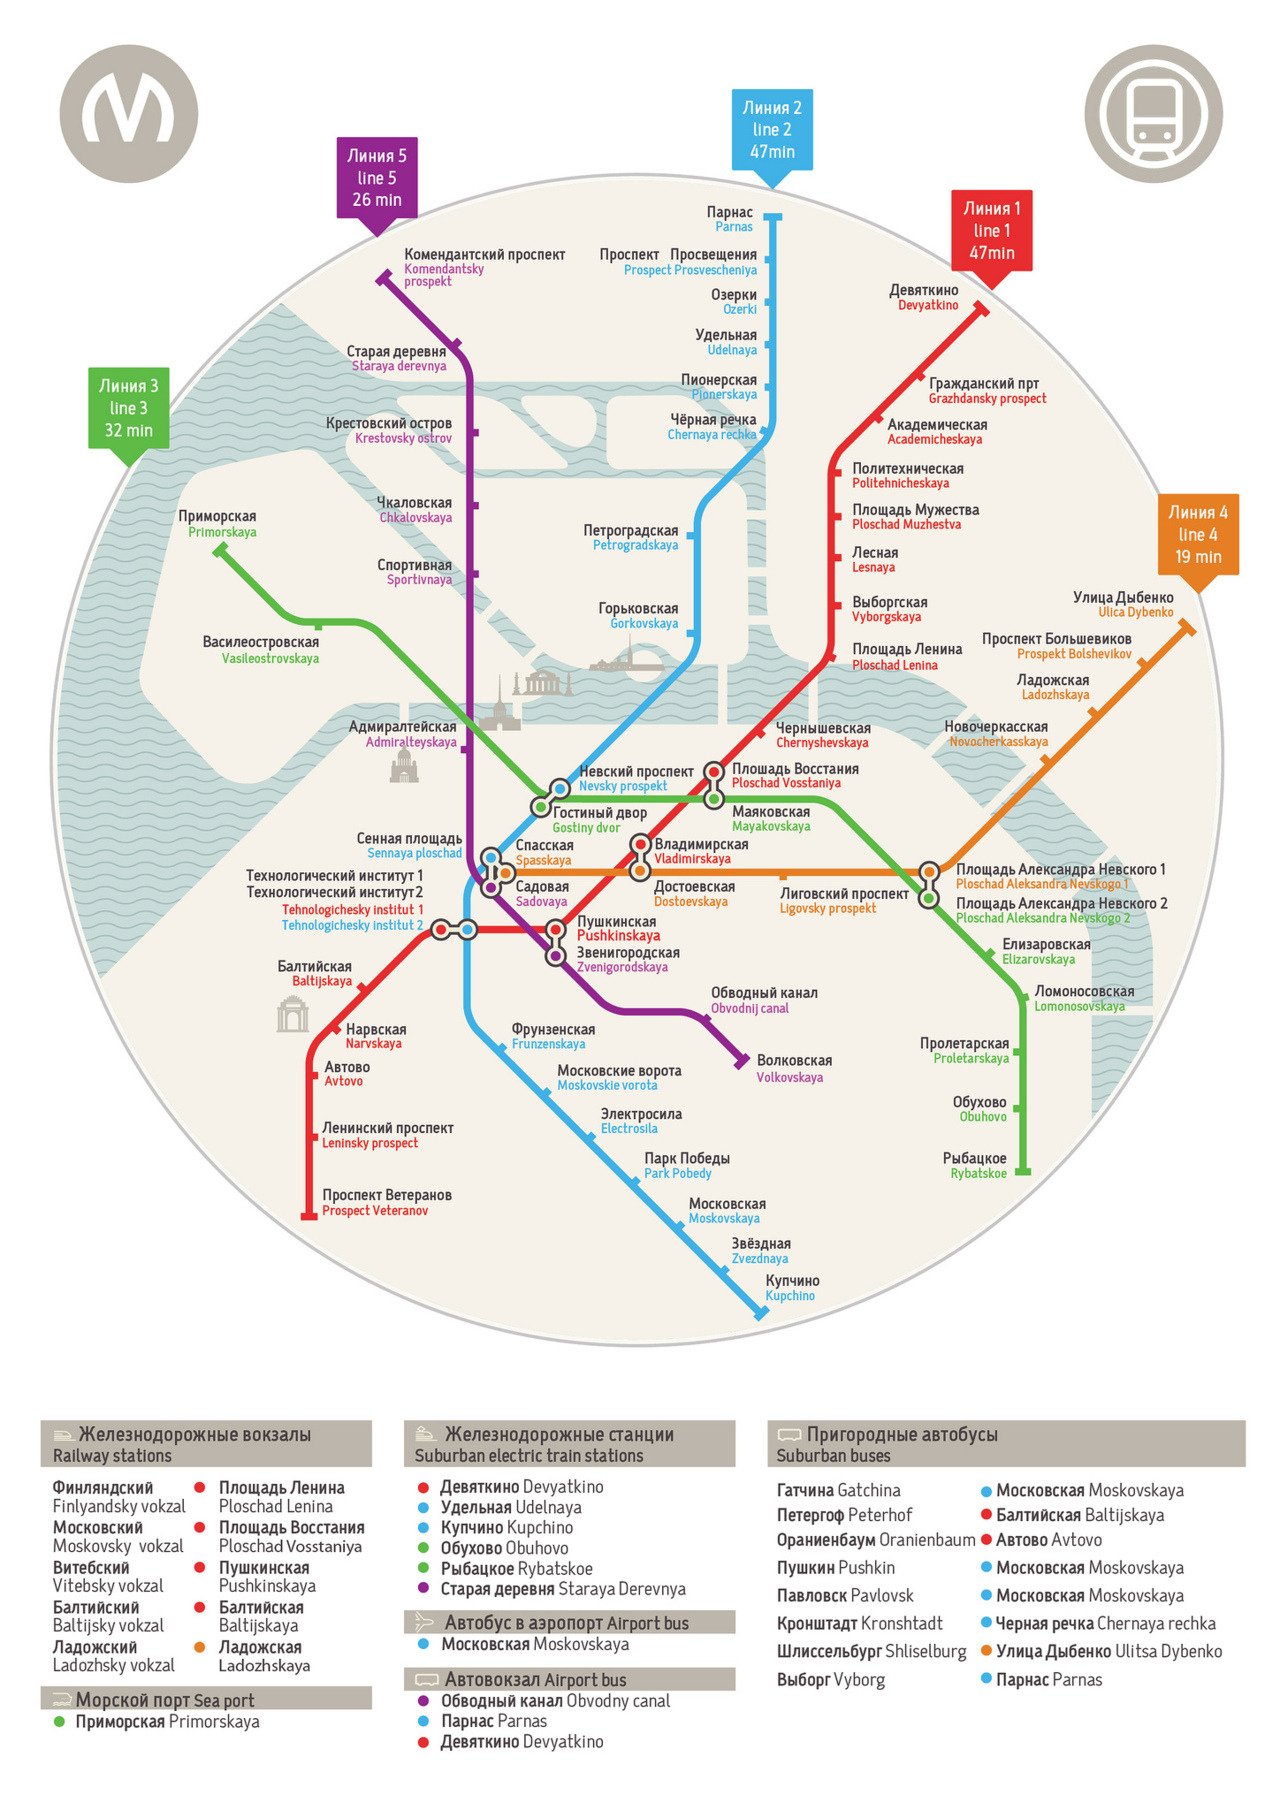 Unofficial Map: St. Petersburg Metro, Russia I came across this map while browsing Flickr last night, and was totally blown away by it. This map of St. Petersburg's Metro system is simply gorgeous and is far, far better than the current official map. Definitely one of my favourite maps of the year so far. Have we been there? No. What we like: So many things! The lovely pattern used for the waterways, the stylish icons for points of interest, the inclusion of the city's bridges as reference points, the clever use of colour to differentiate the Cyrillic station names from their Romanised equivalents, the beautifully abstracted geography, the circle shape of the city limits (and the wonderful negative space it creates around the map)… I could go on and on. What we don't like: The placement of the interchange station markers where Lines 1 and 2, and also 2 and 3, cross could be a little better and more consistent with the other interchange stations. The placement of the station at the 2/3 interchange seems particularly odd, as the coloured dots don't lie directly over the route line they represent. Our rating: Astounding work. Clear, graphically bold, gorgeous, useful. 5 stars!  (Source: k3sotnikova/Flickr)